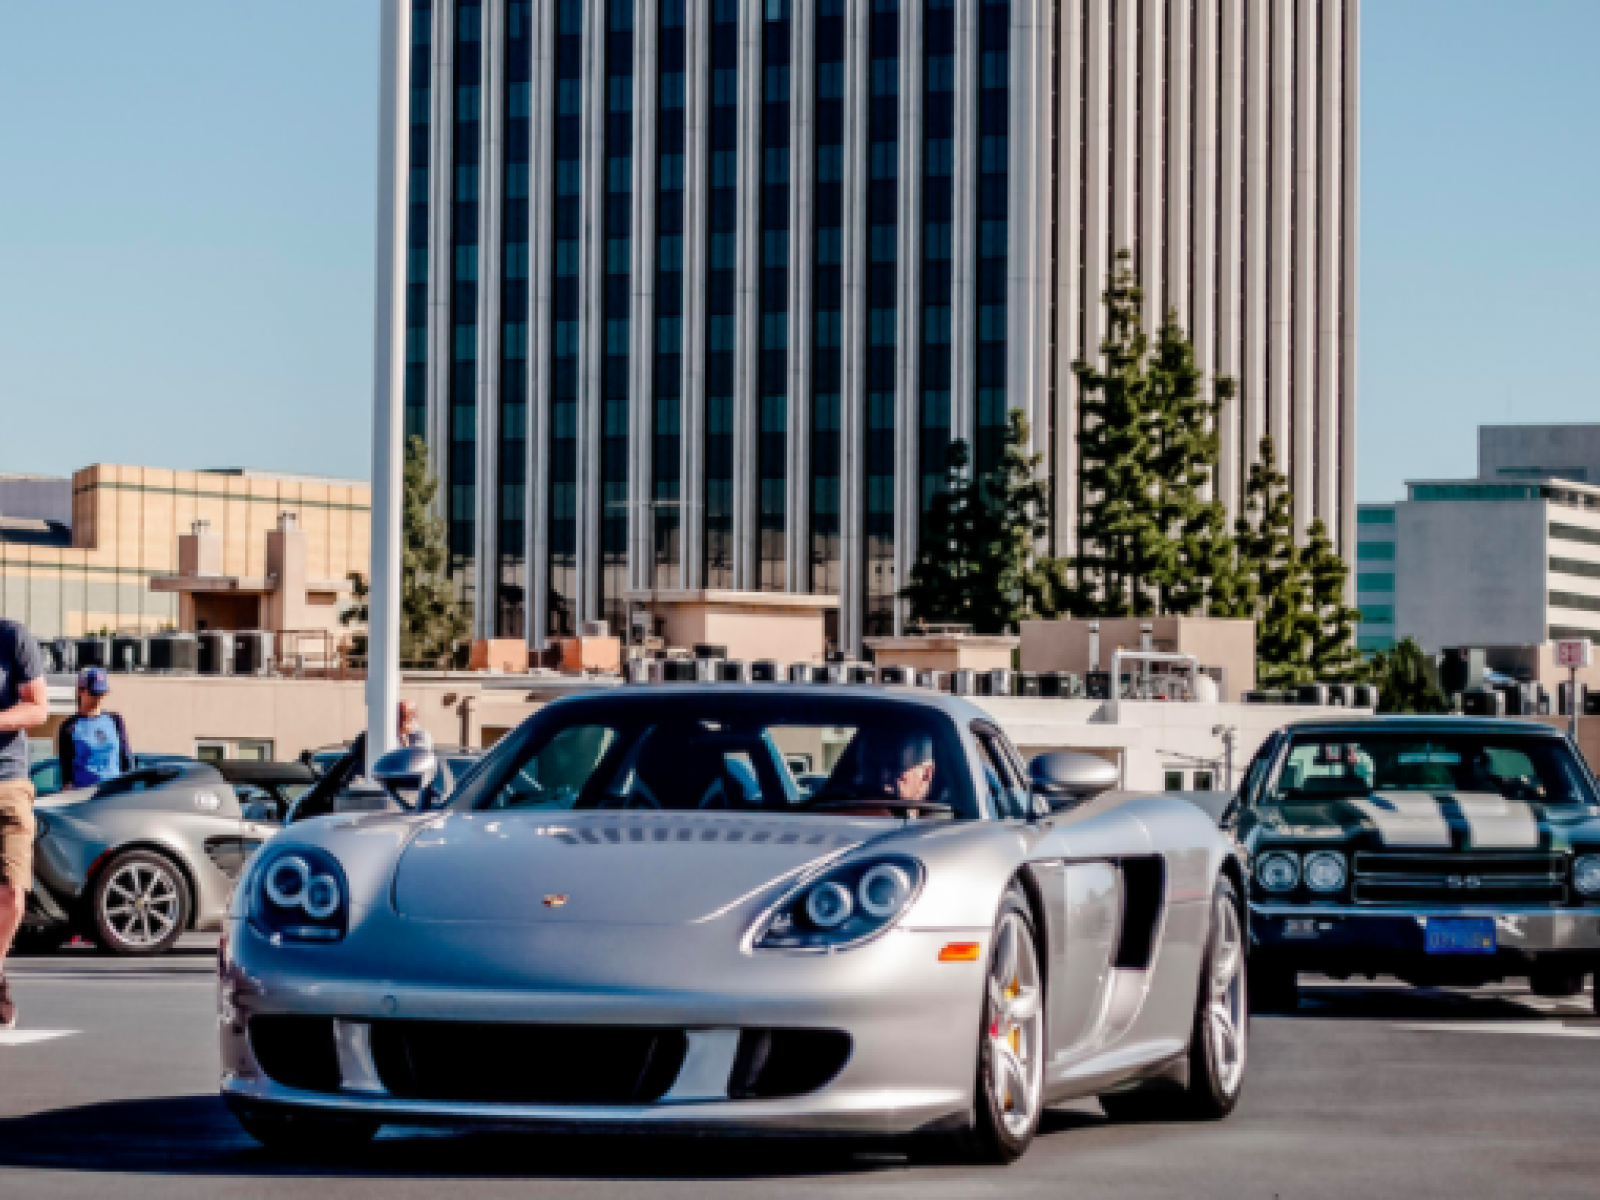 Main image for event titled OCTOBER BREAKFAST CLUB CRUISE-IN